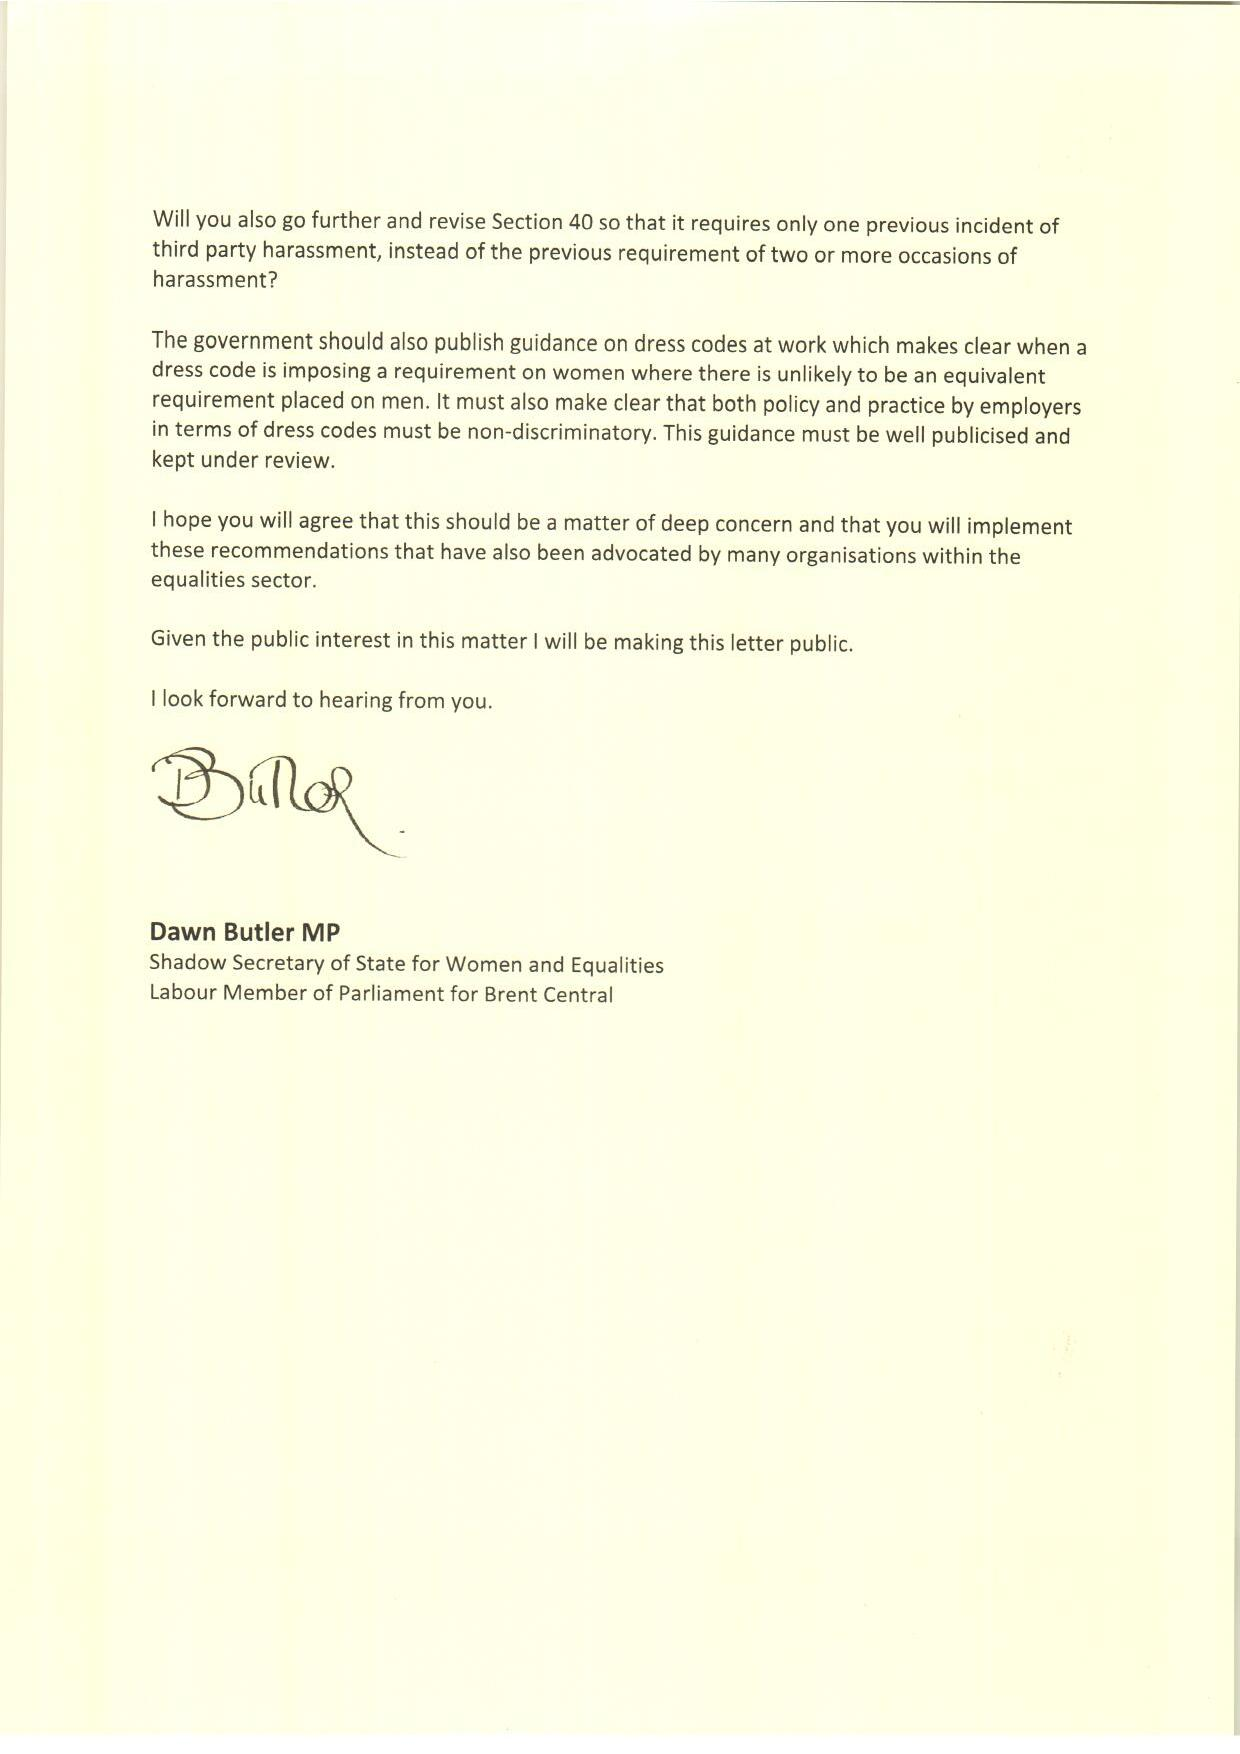 Letter_to_the_Prime_Minister_-_Presidents_Club_250118-page-002_(1).jpg